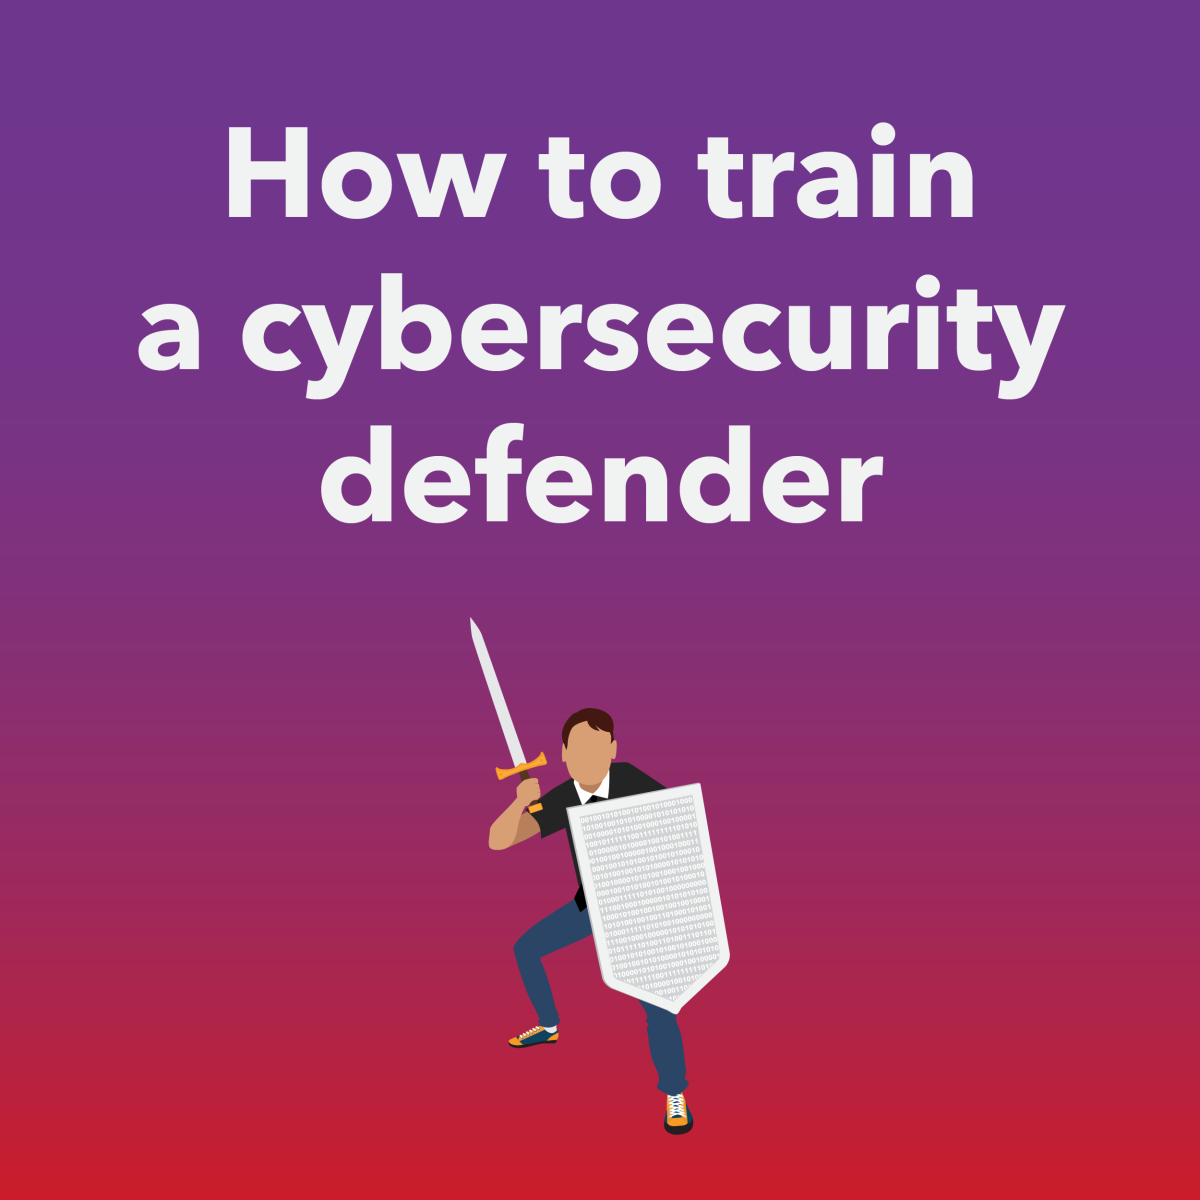 How to train a cybersecurity defender